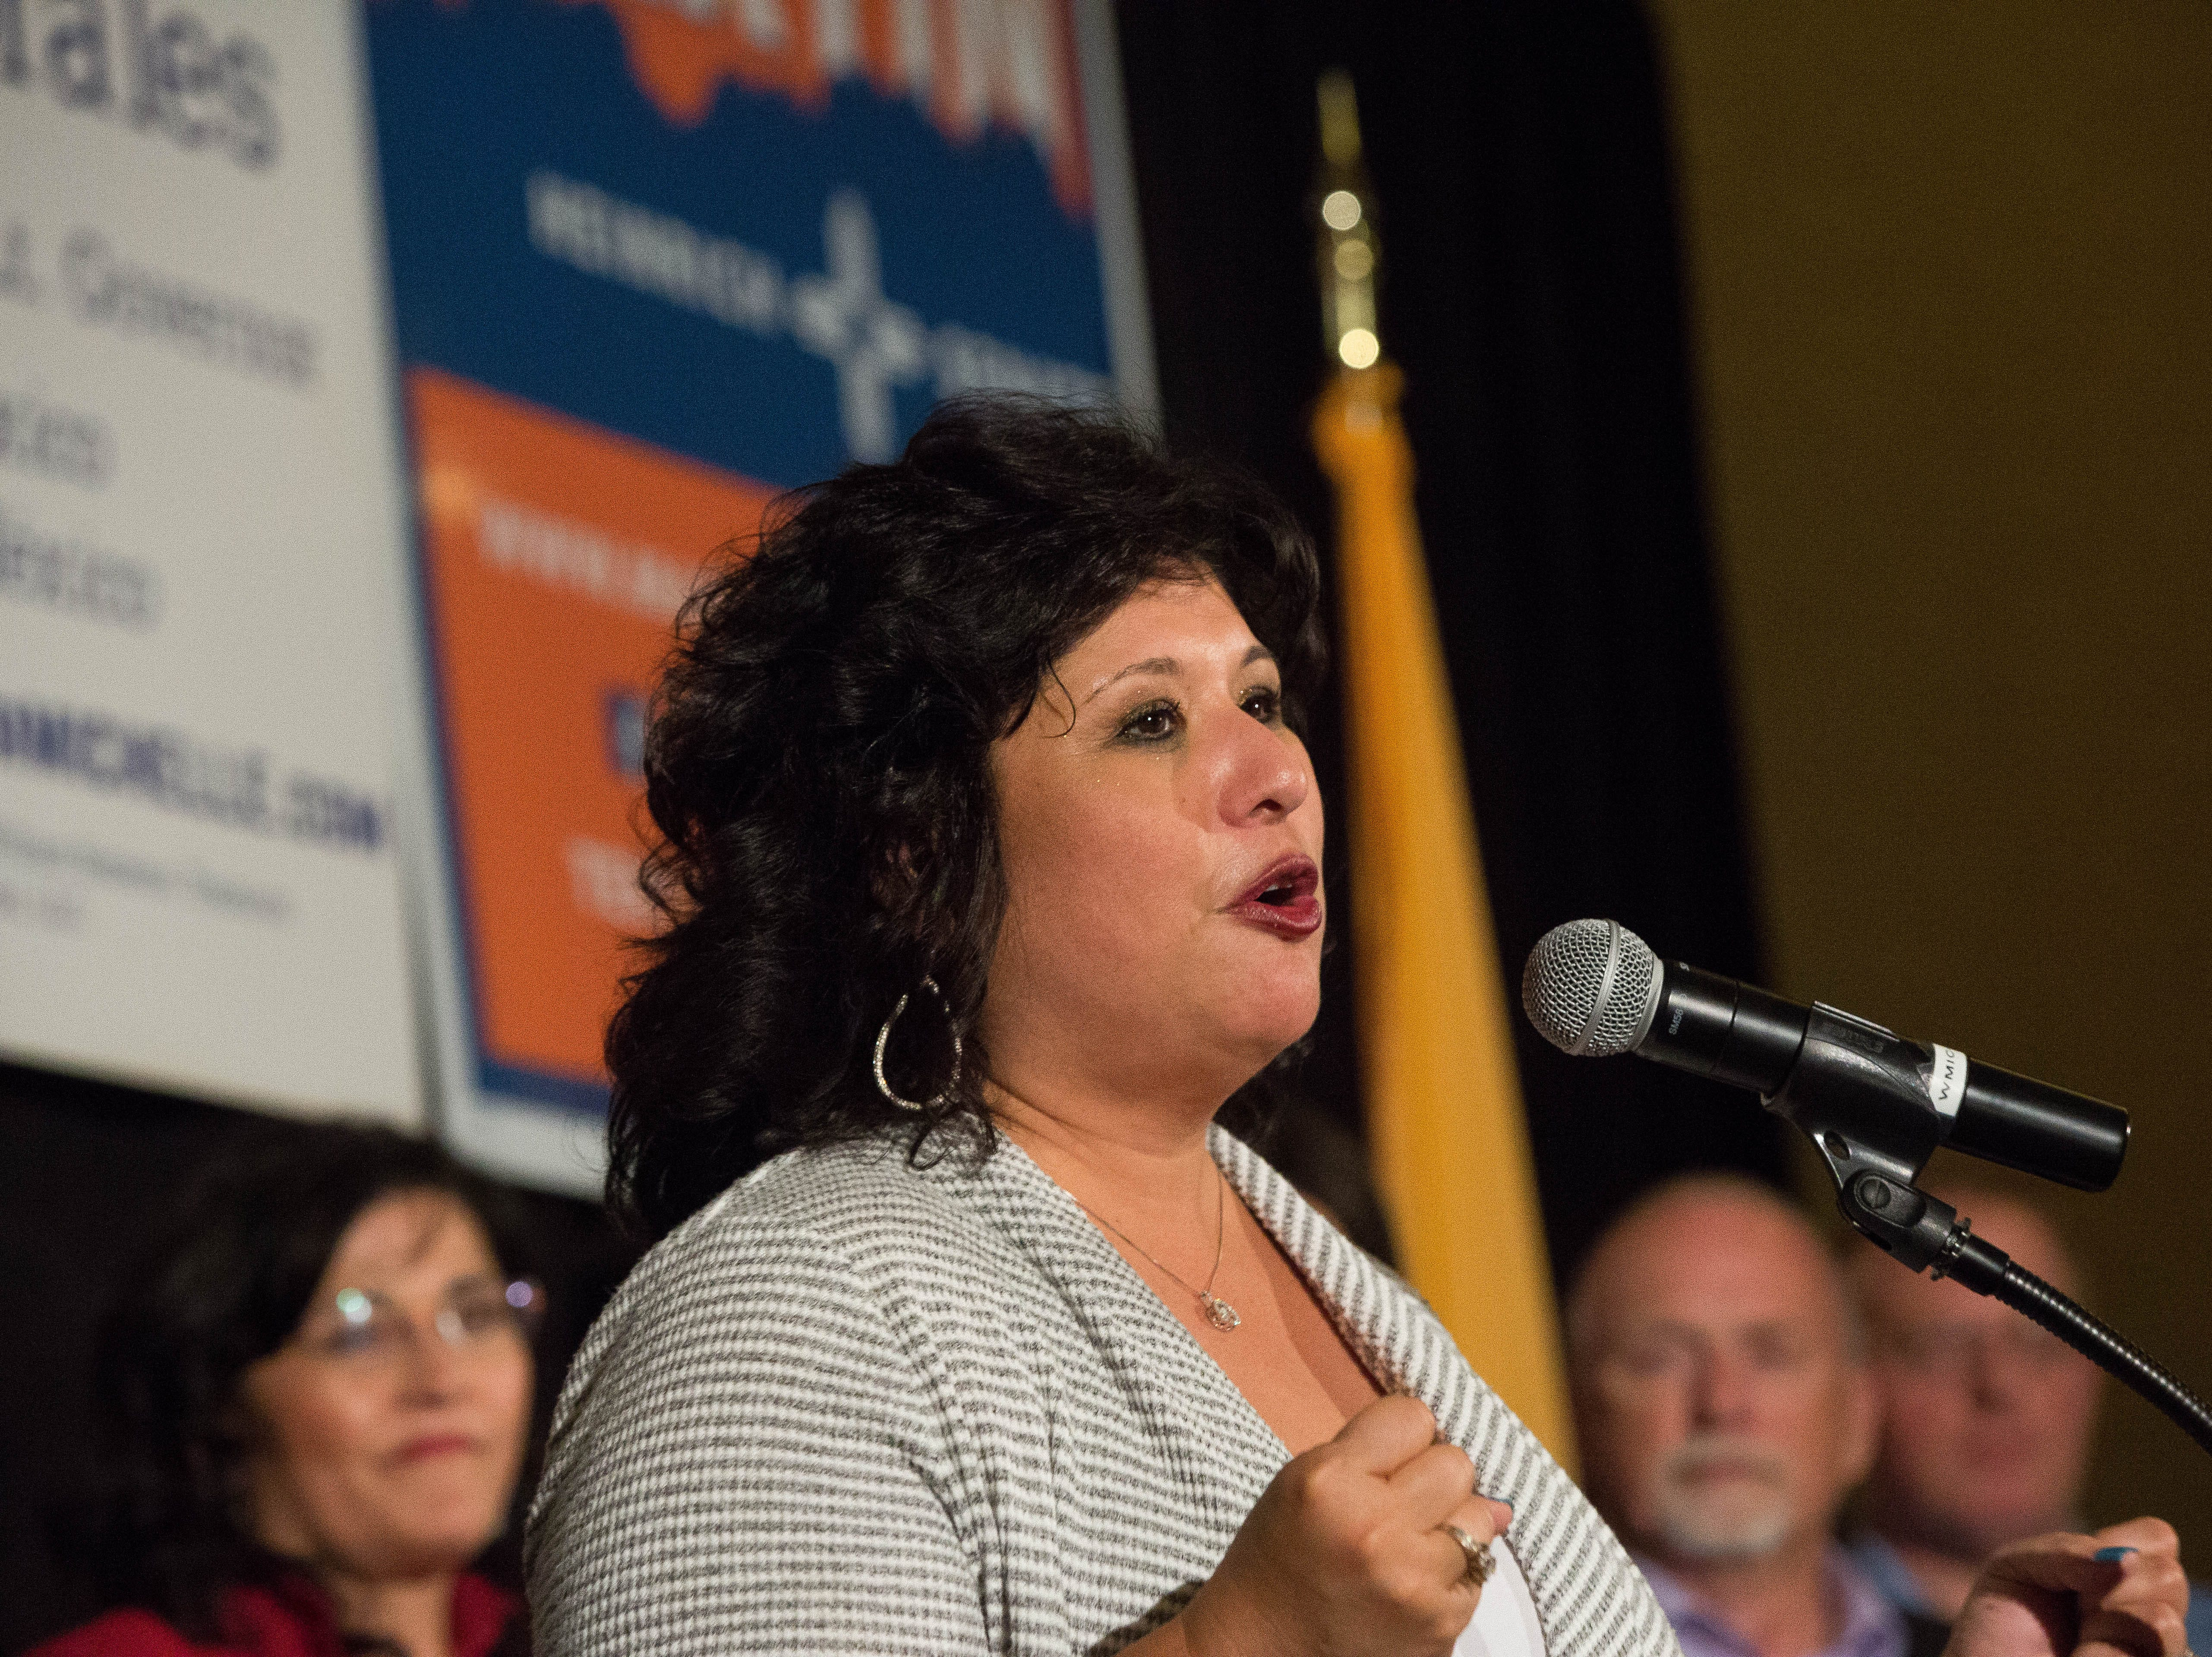 Doreen Gallegos, Democratic candidate for House District 52, speaks to supporters at a watch party at the Las Cruces Convention Center on Tuesday, Nov. 6, 2018, after winning her race against Republican David Cheek.